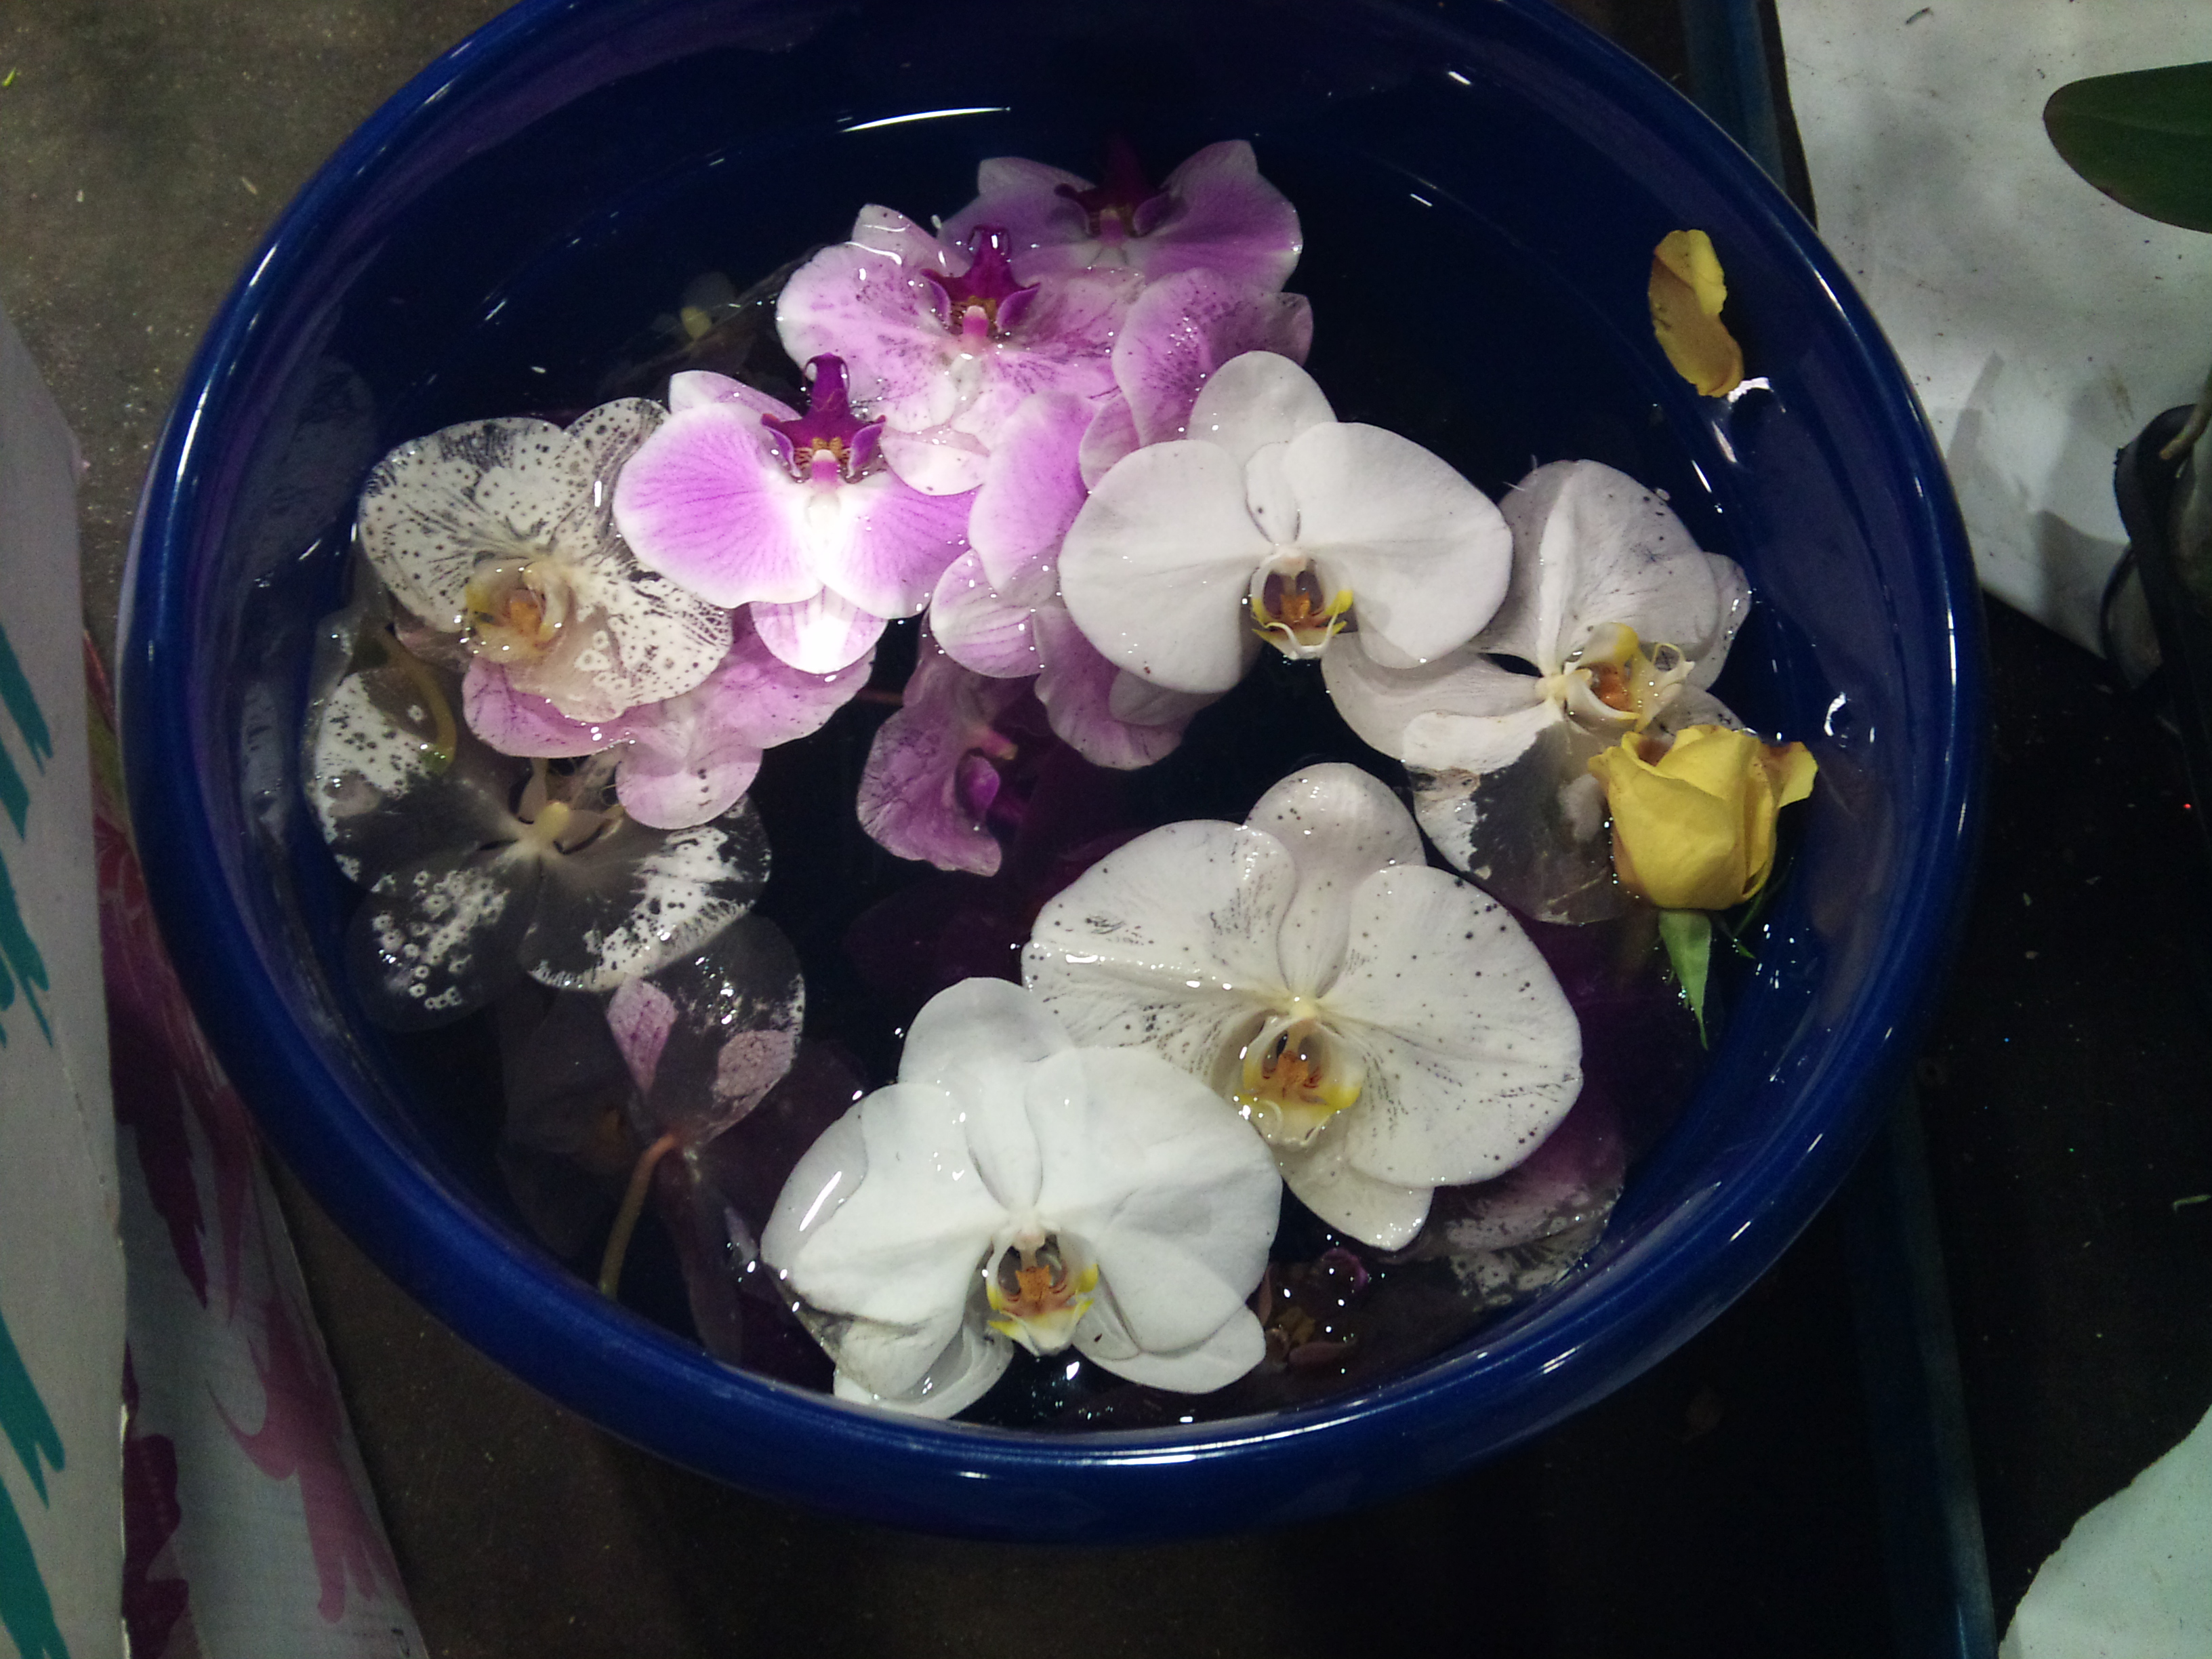 2012-11-orchid-spa.jpg?mtime=20171003160401#asset:12699